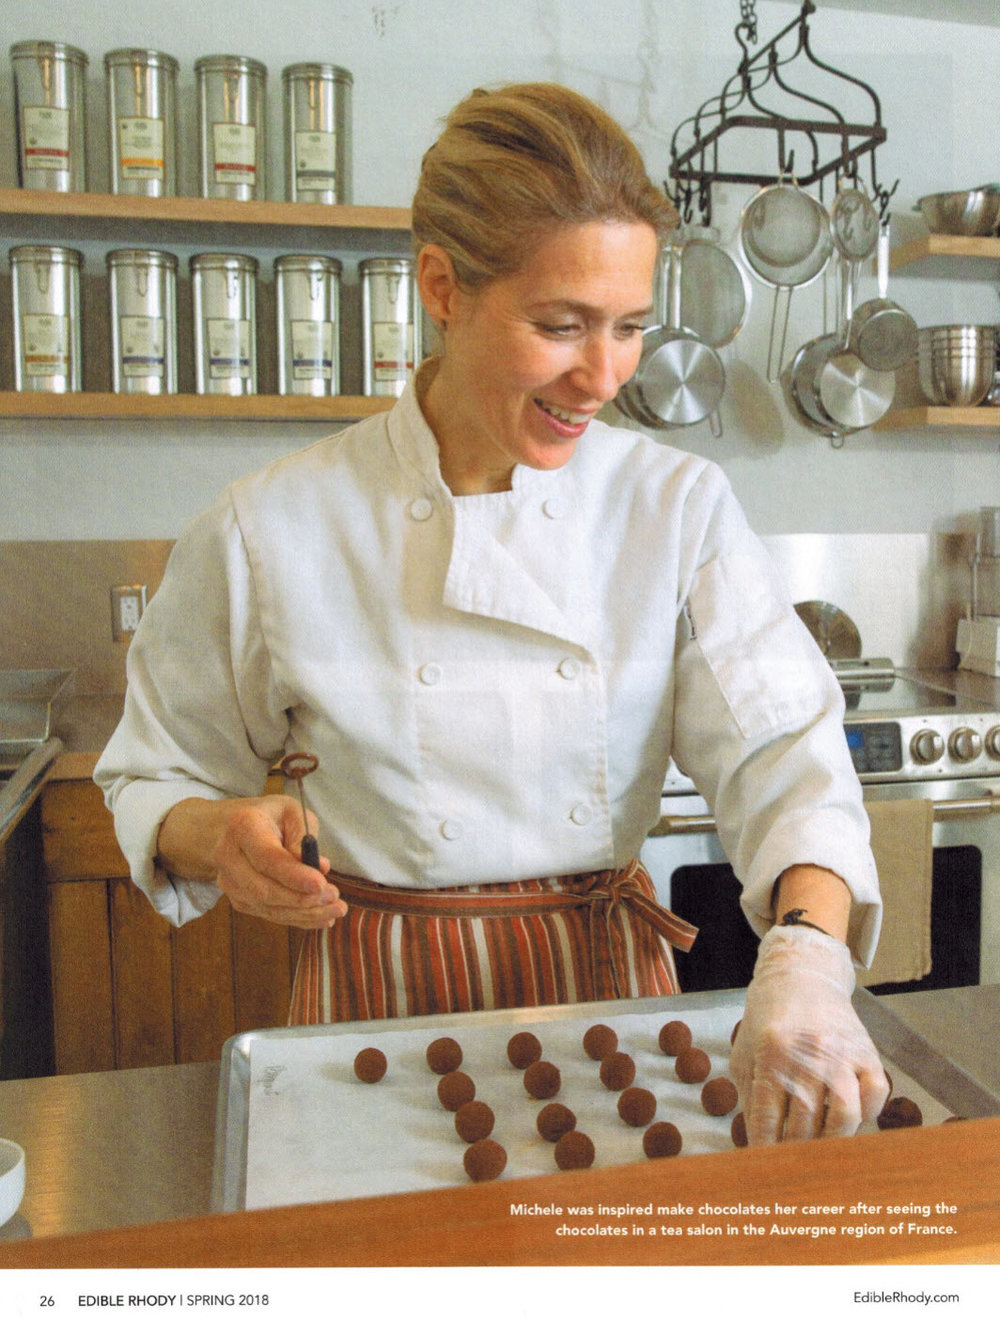 Michele was inspired to make chocolates her career after seeing the chocolates in a tea salon in the Auvergne region of France.